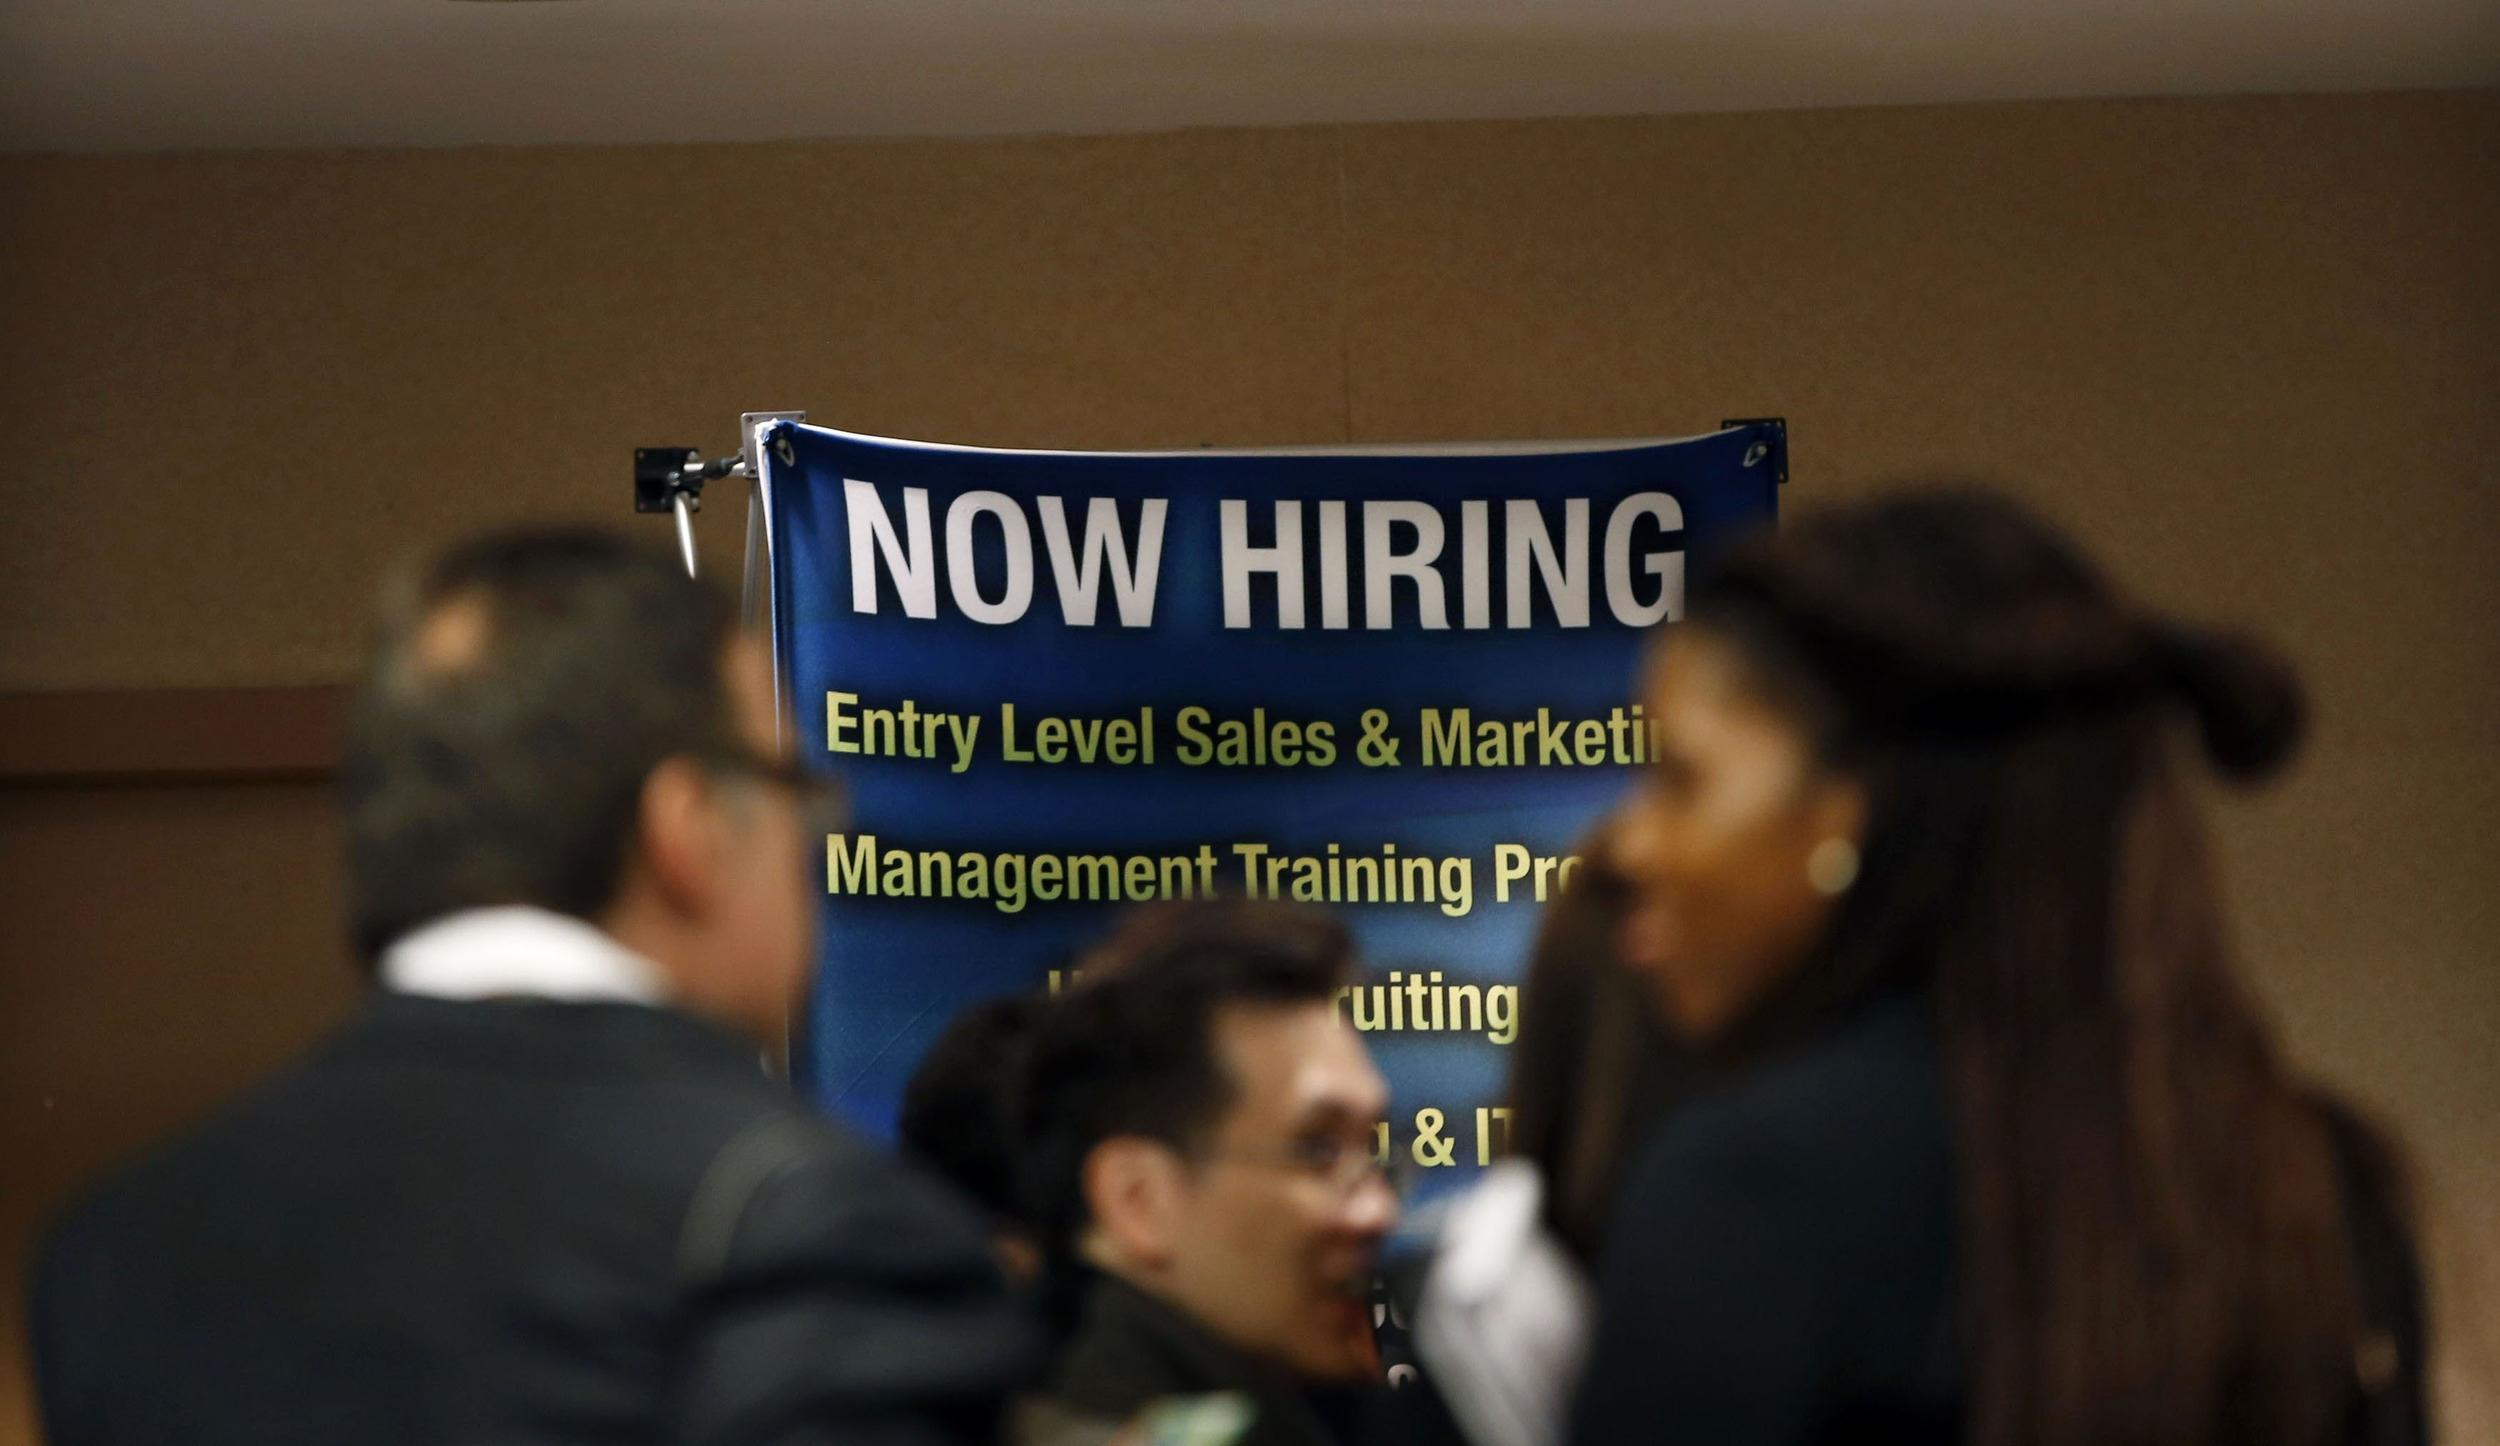 Next, don't blow the interview by hugging the hiring manager. First impression is key.